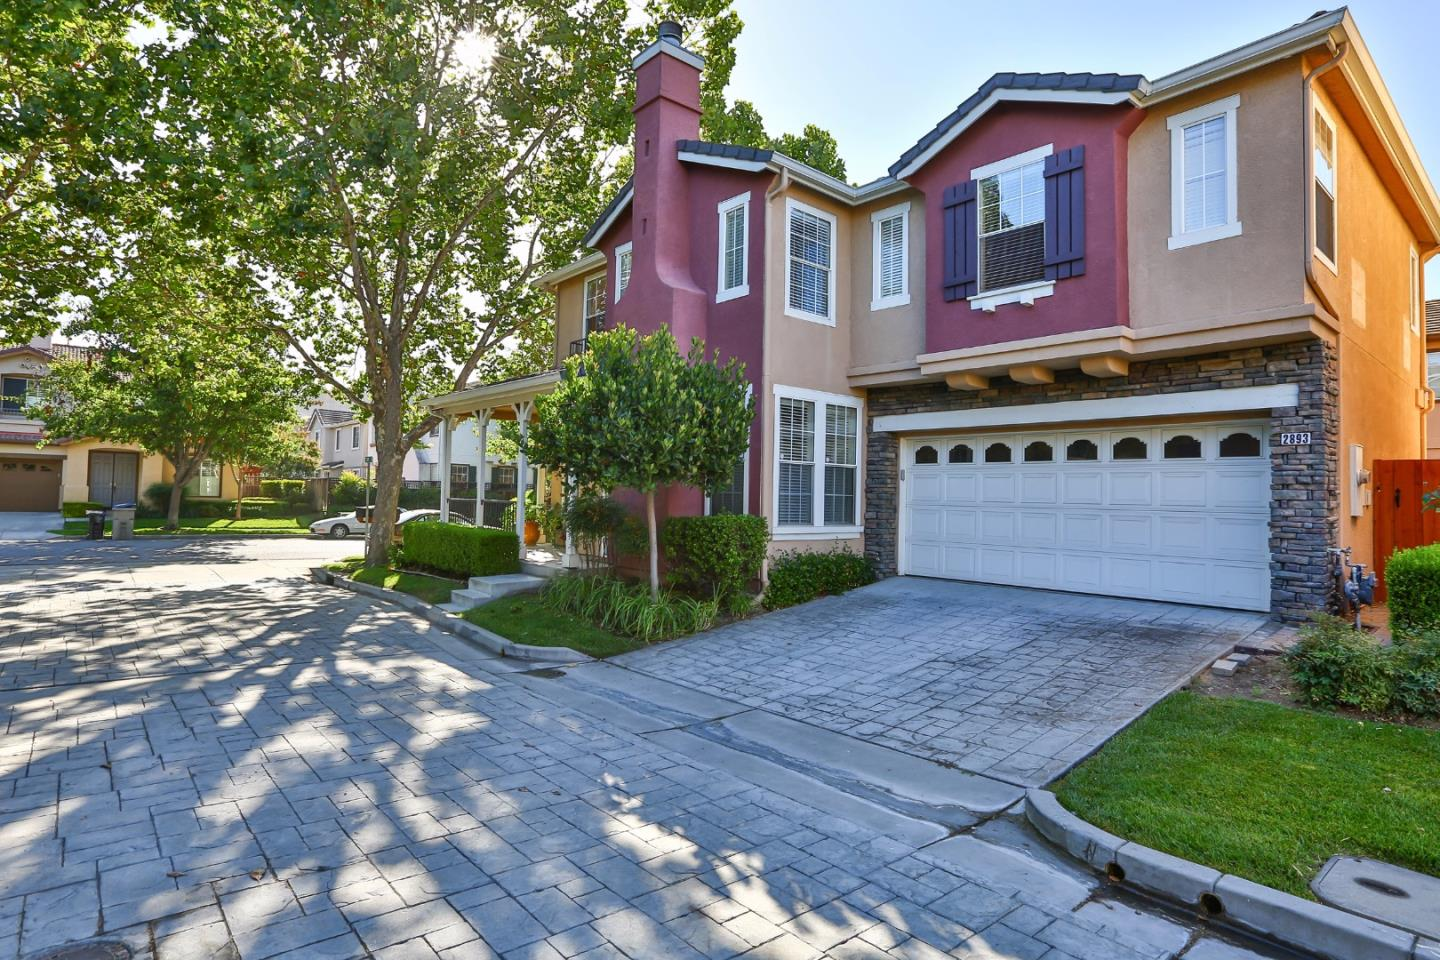 Additional photo for property listing at 2893 Rubino Circle  San Jose, California 95125 United States